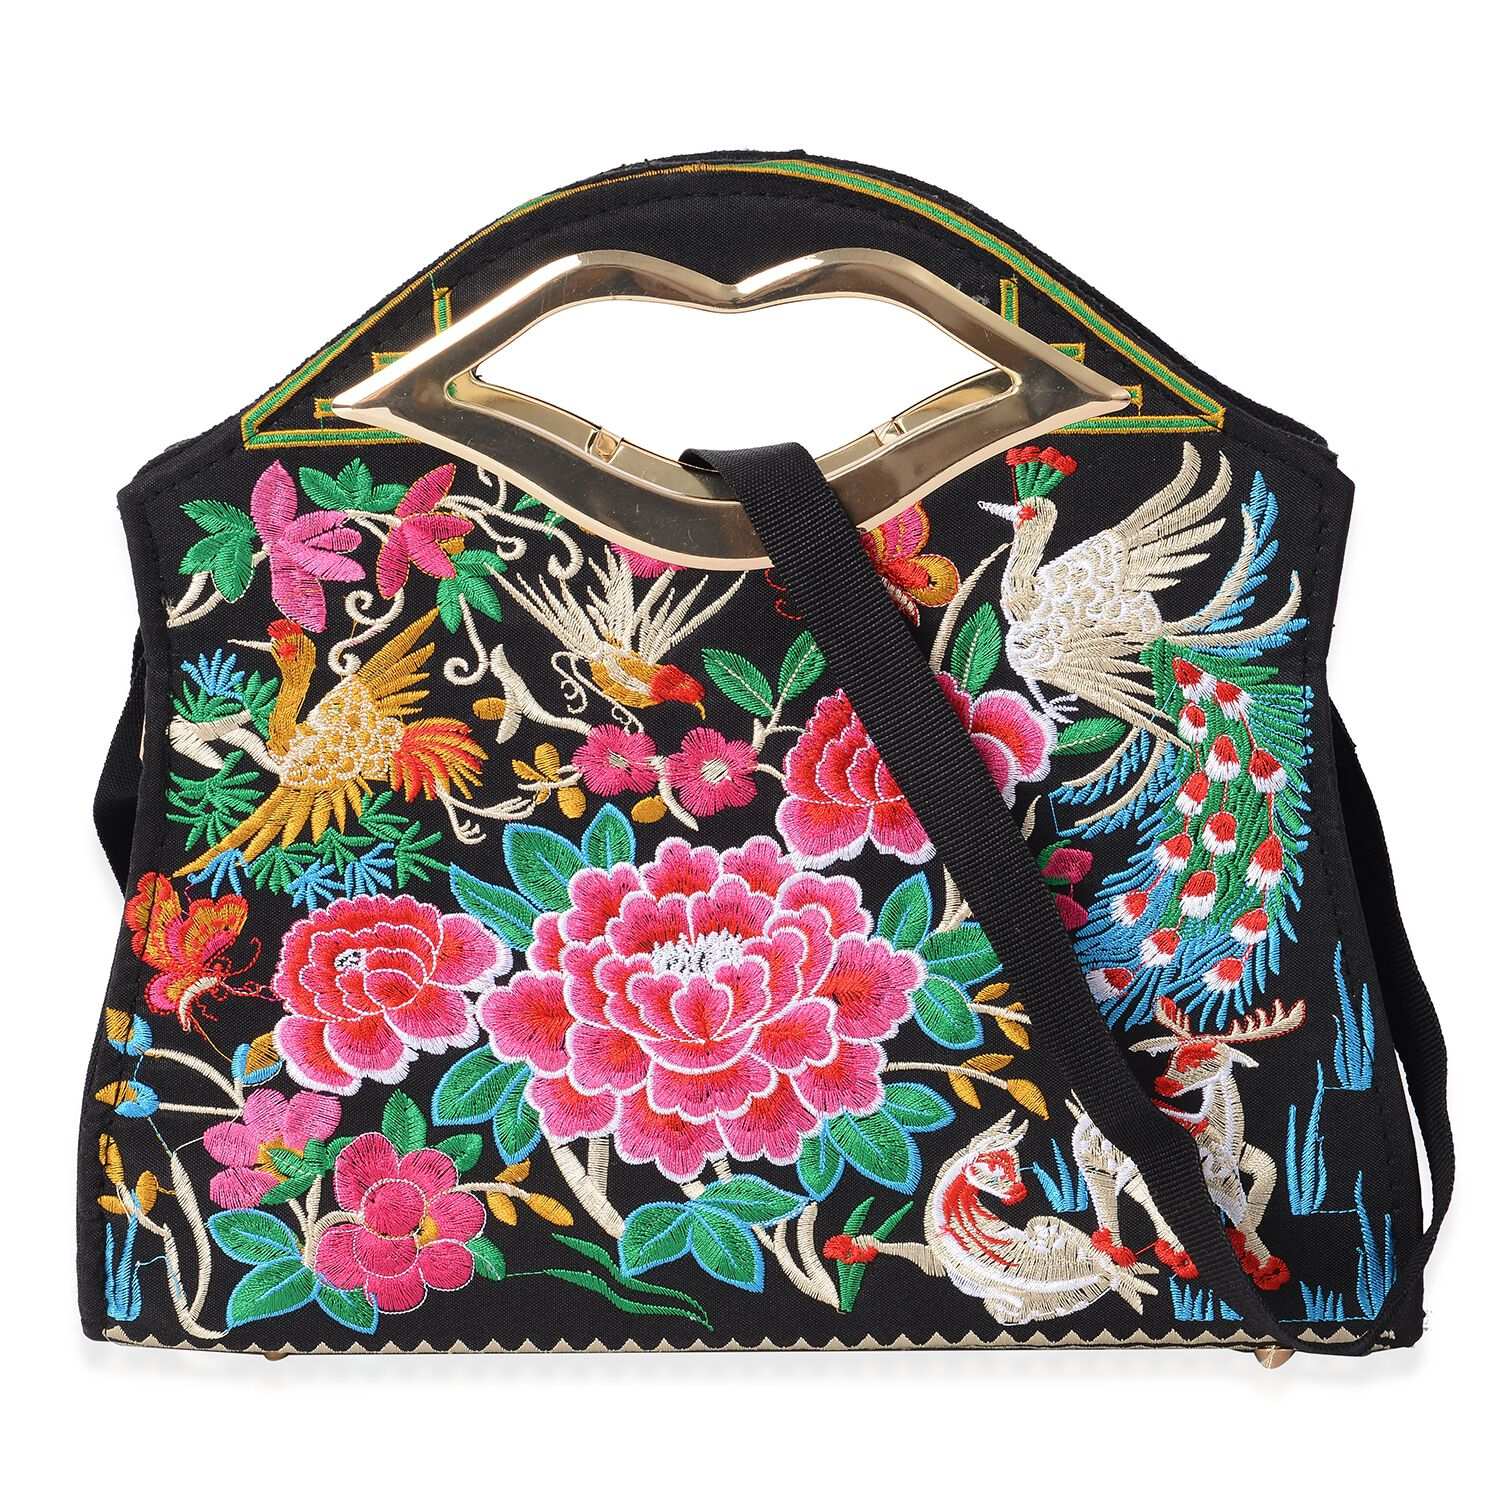 Multicolour Flower Embroidery Pattern Tote Bag with Detachable Shoulder Strap